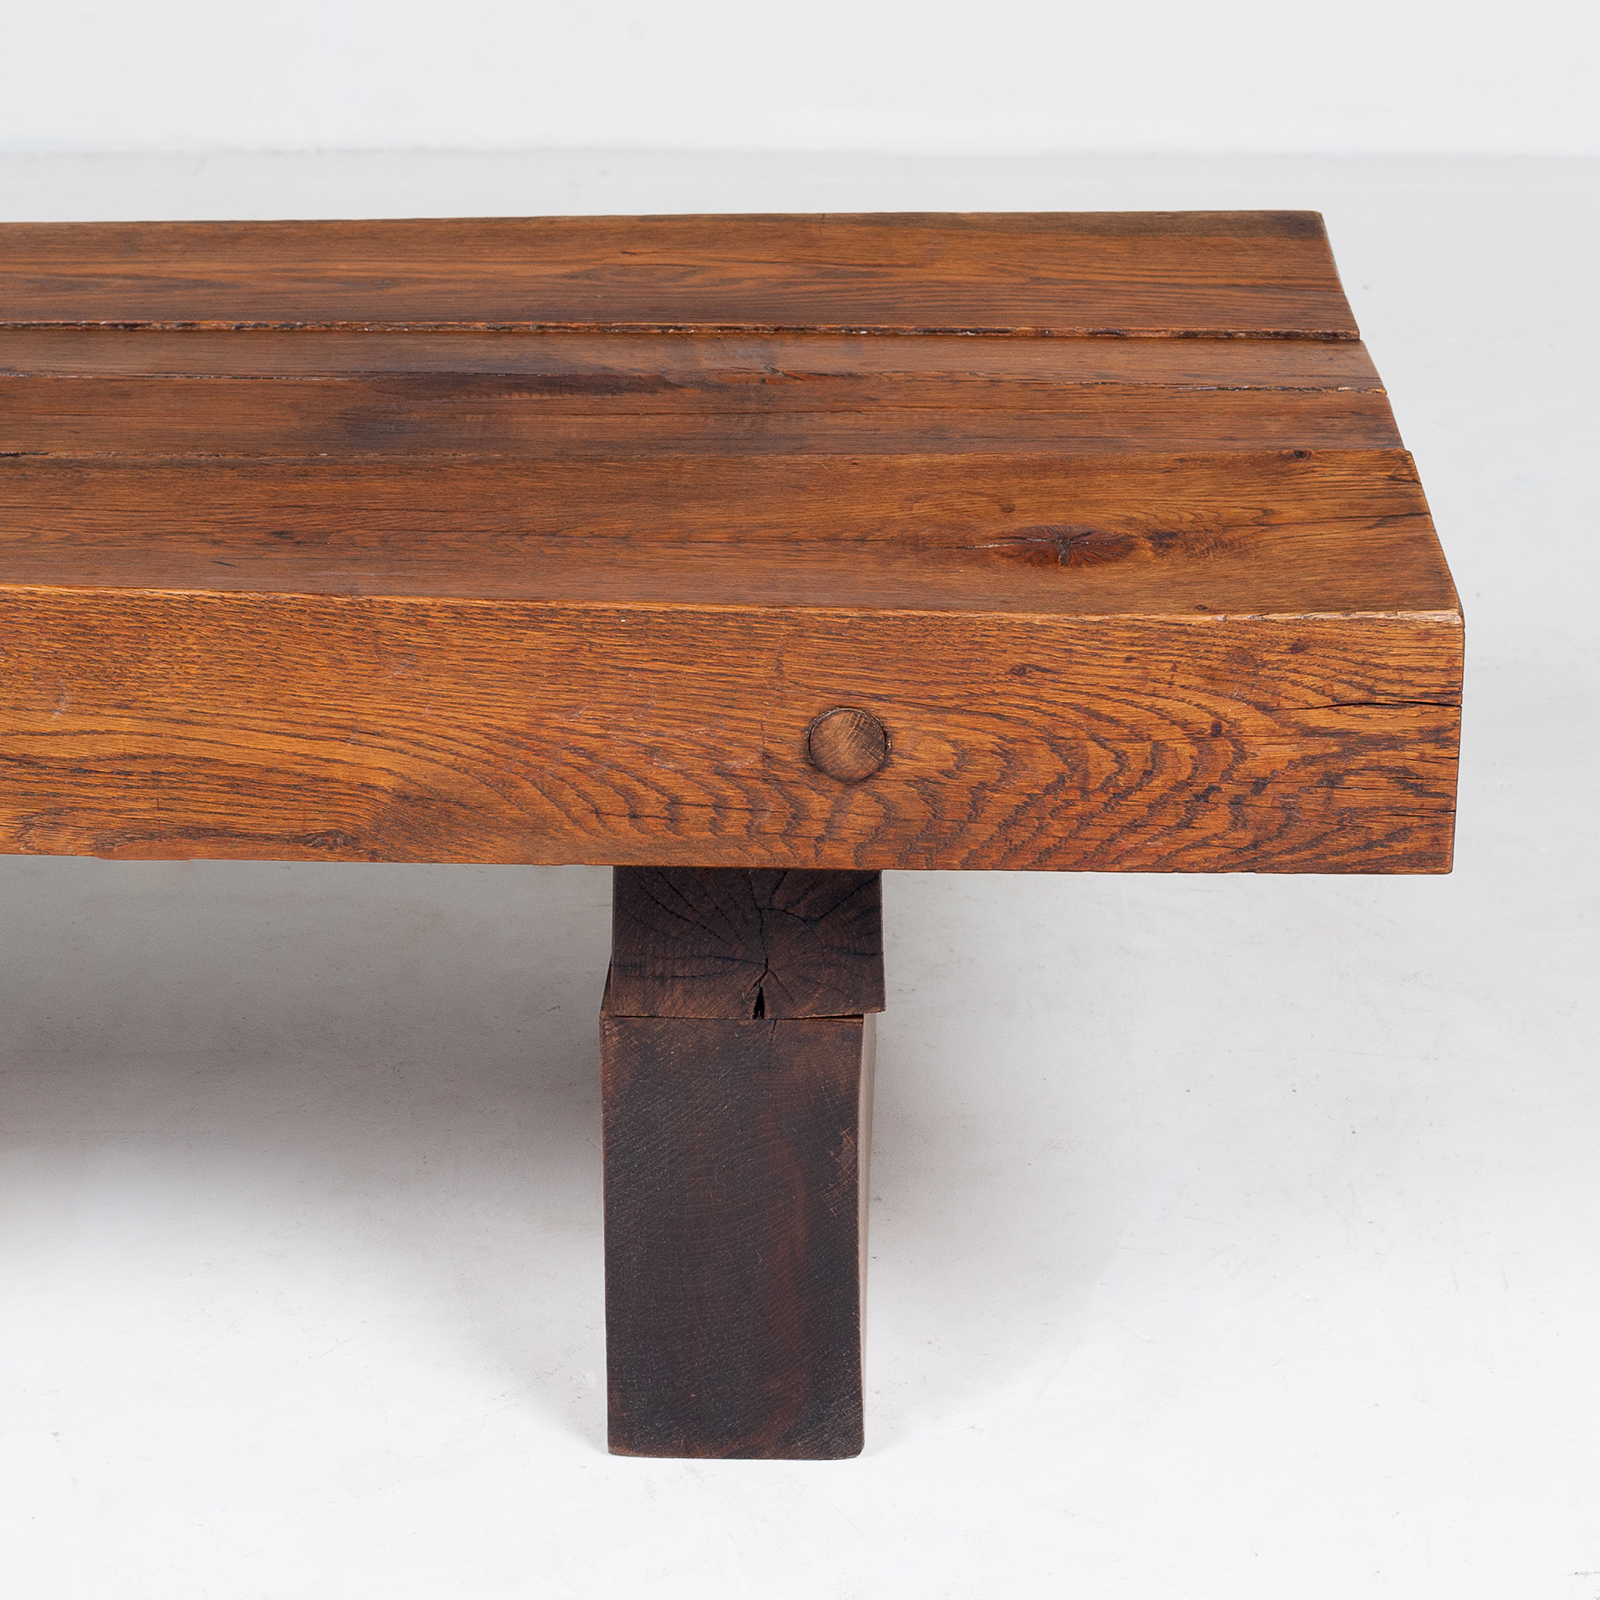 Brutalist Style Coffee Table In Timber, 1960s, The Netherlands 797